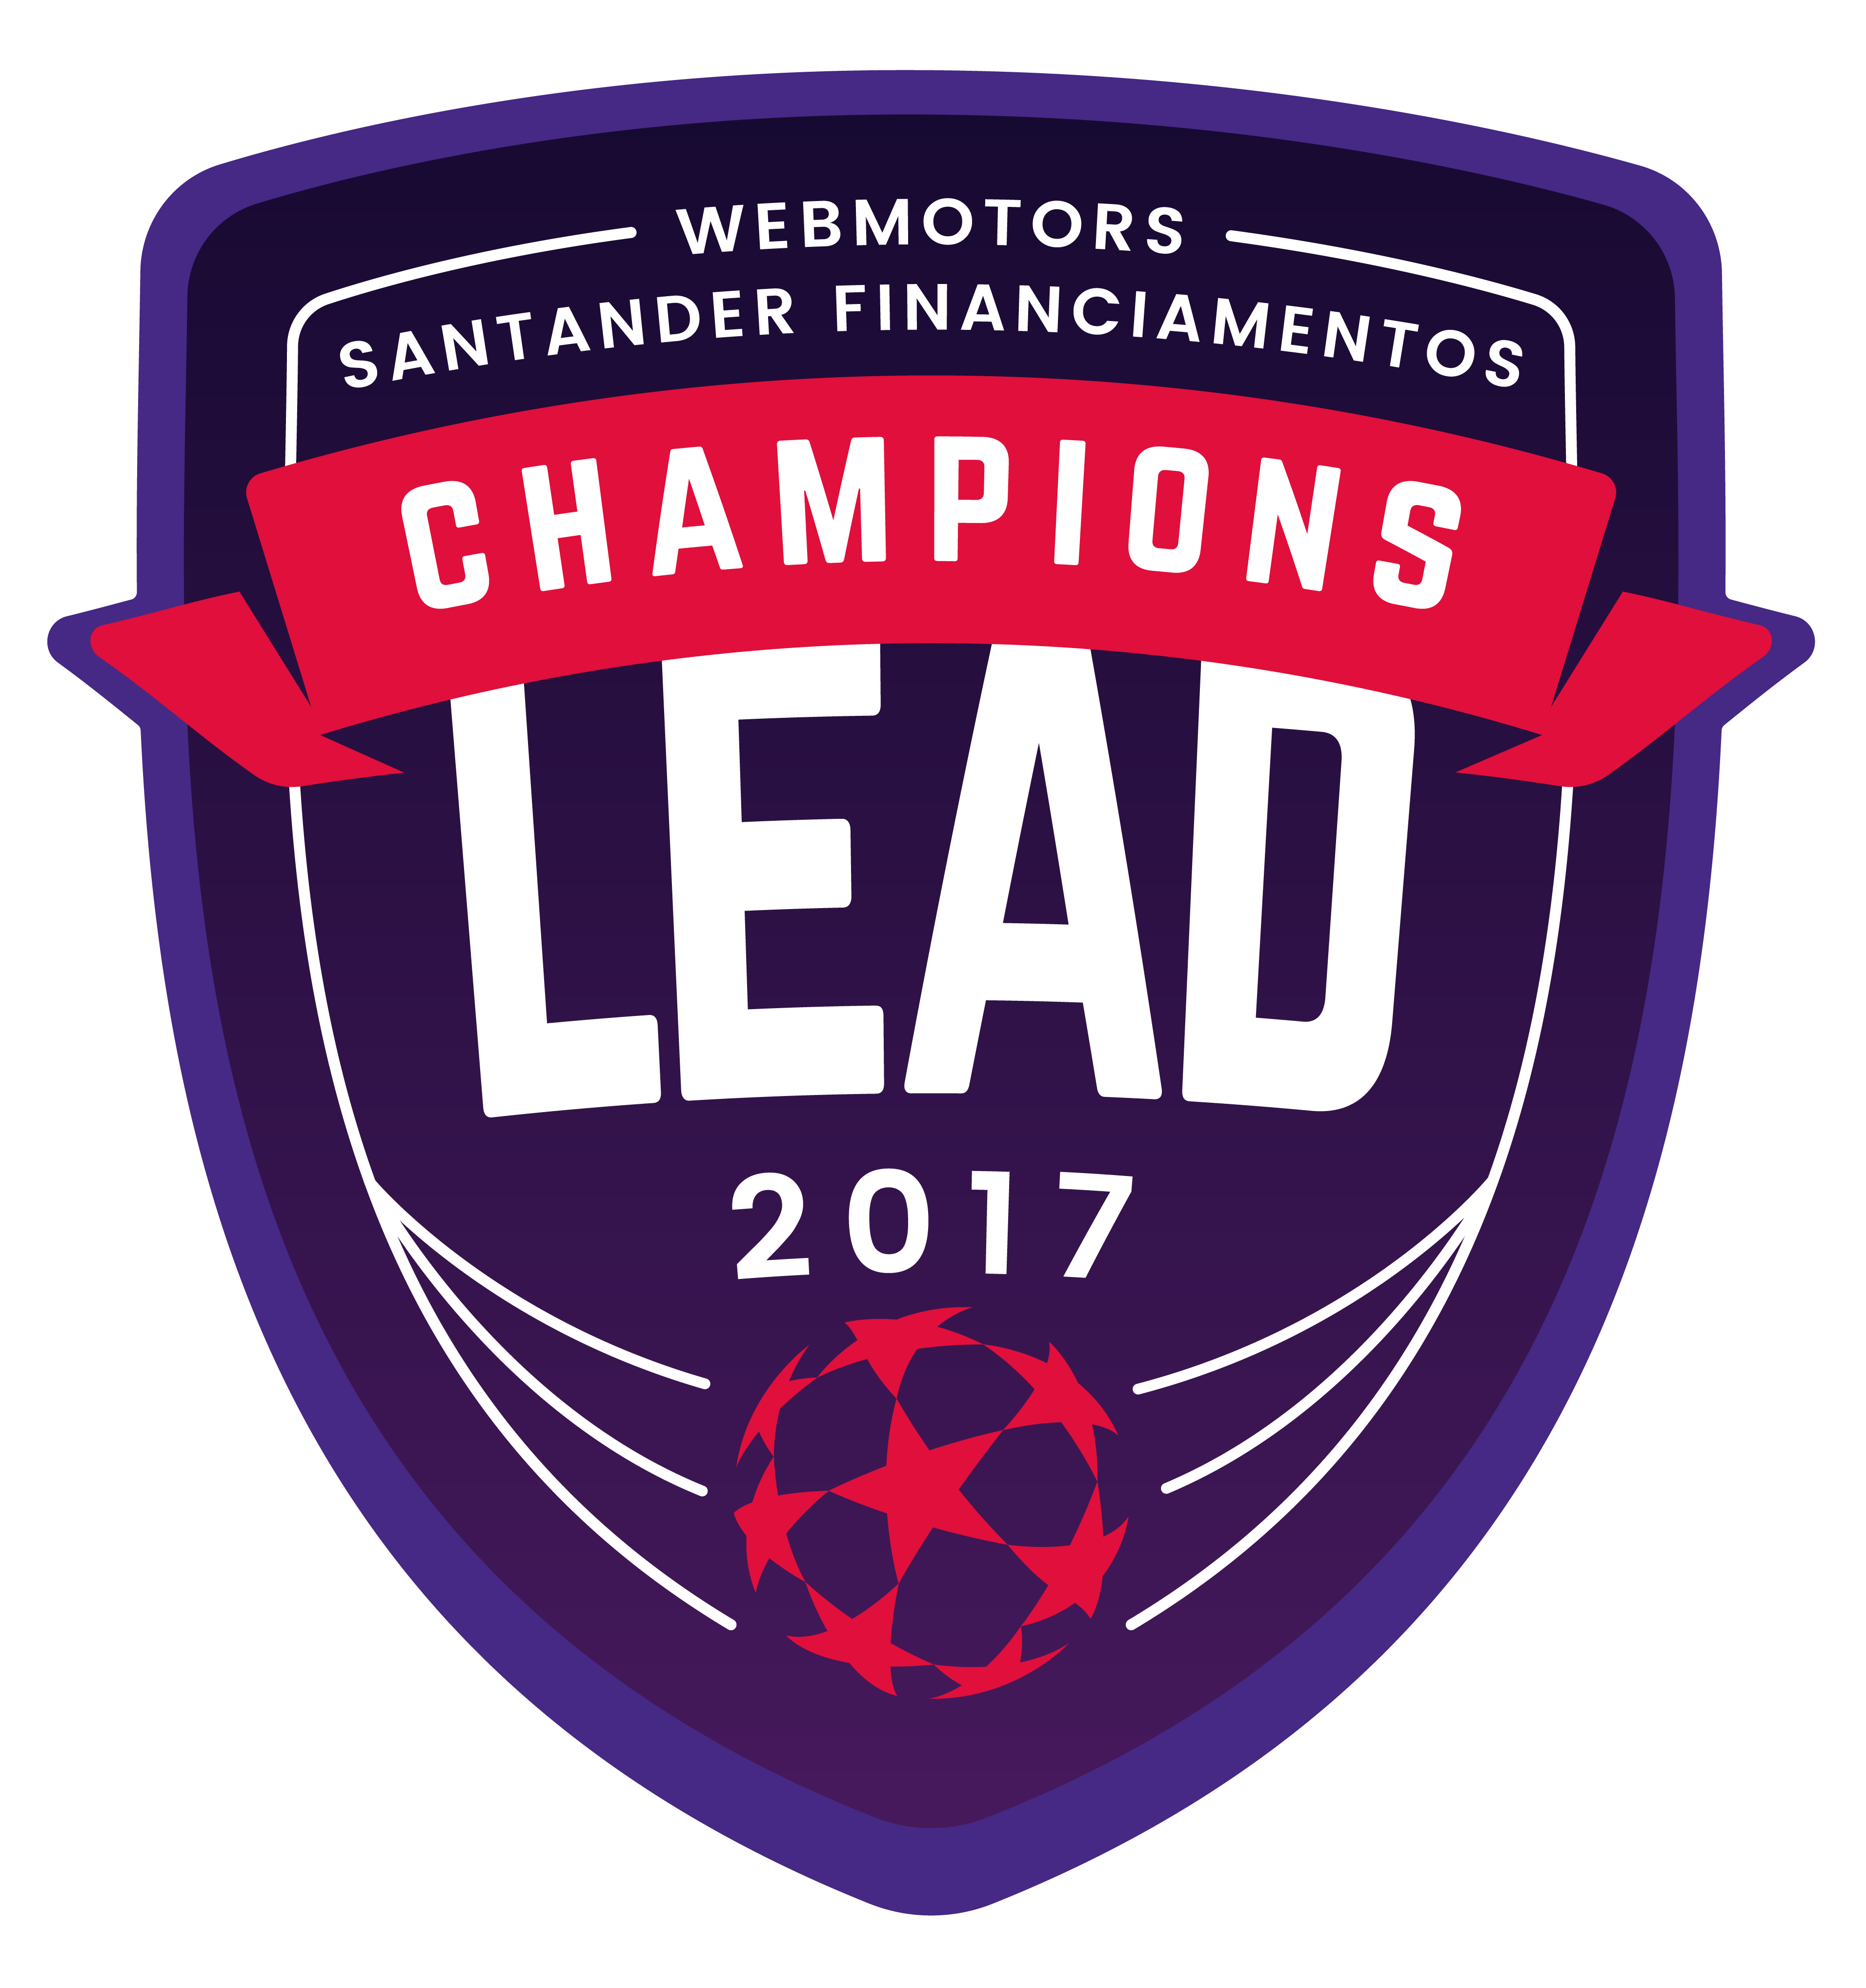 Webmotors Santander Financiamentos - Champions LEAD 2017 -